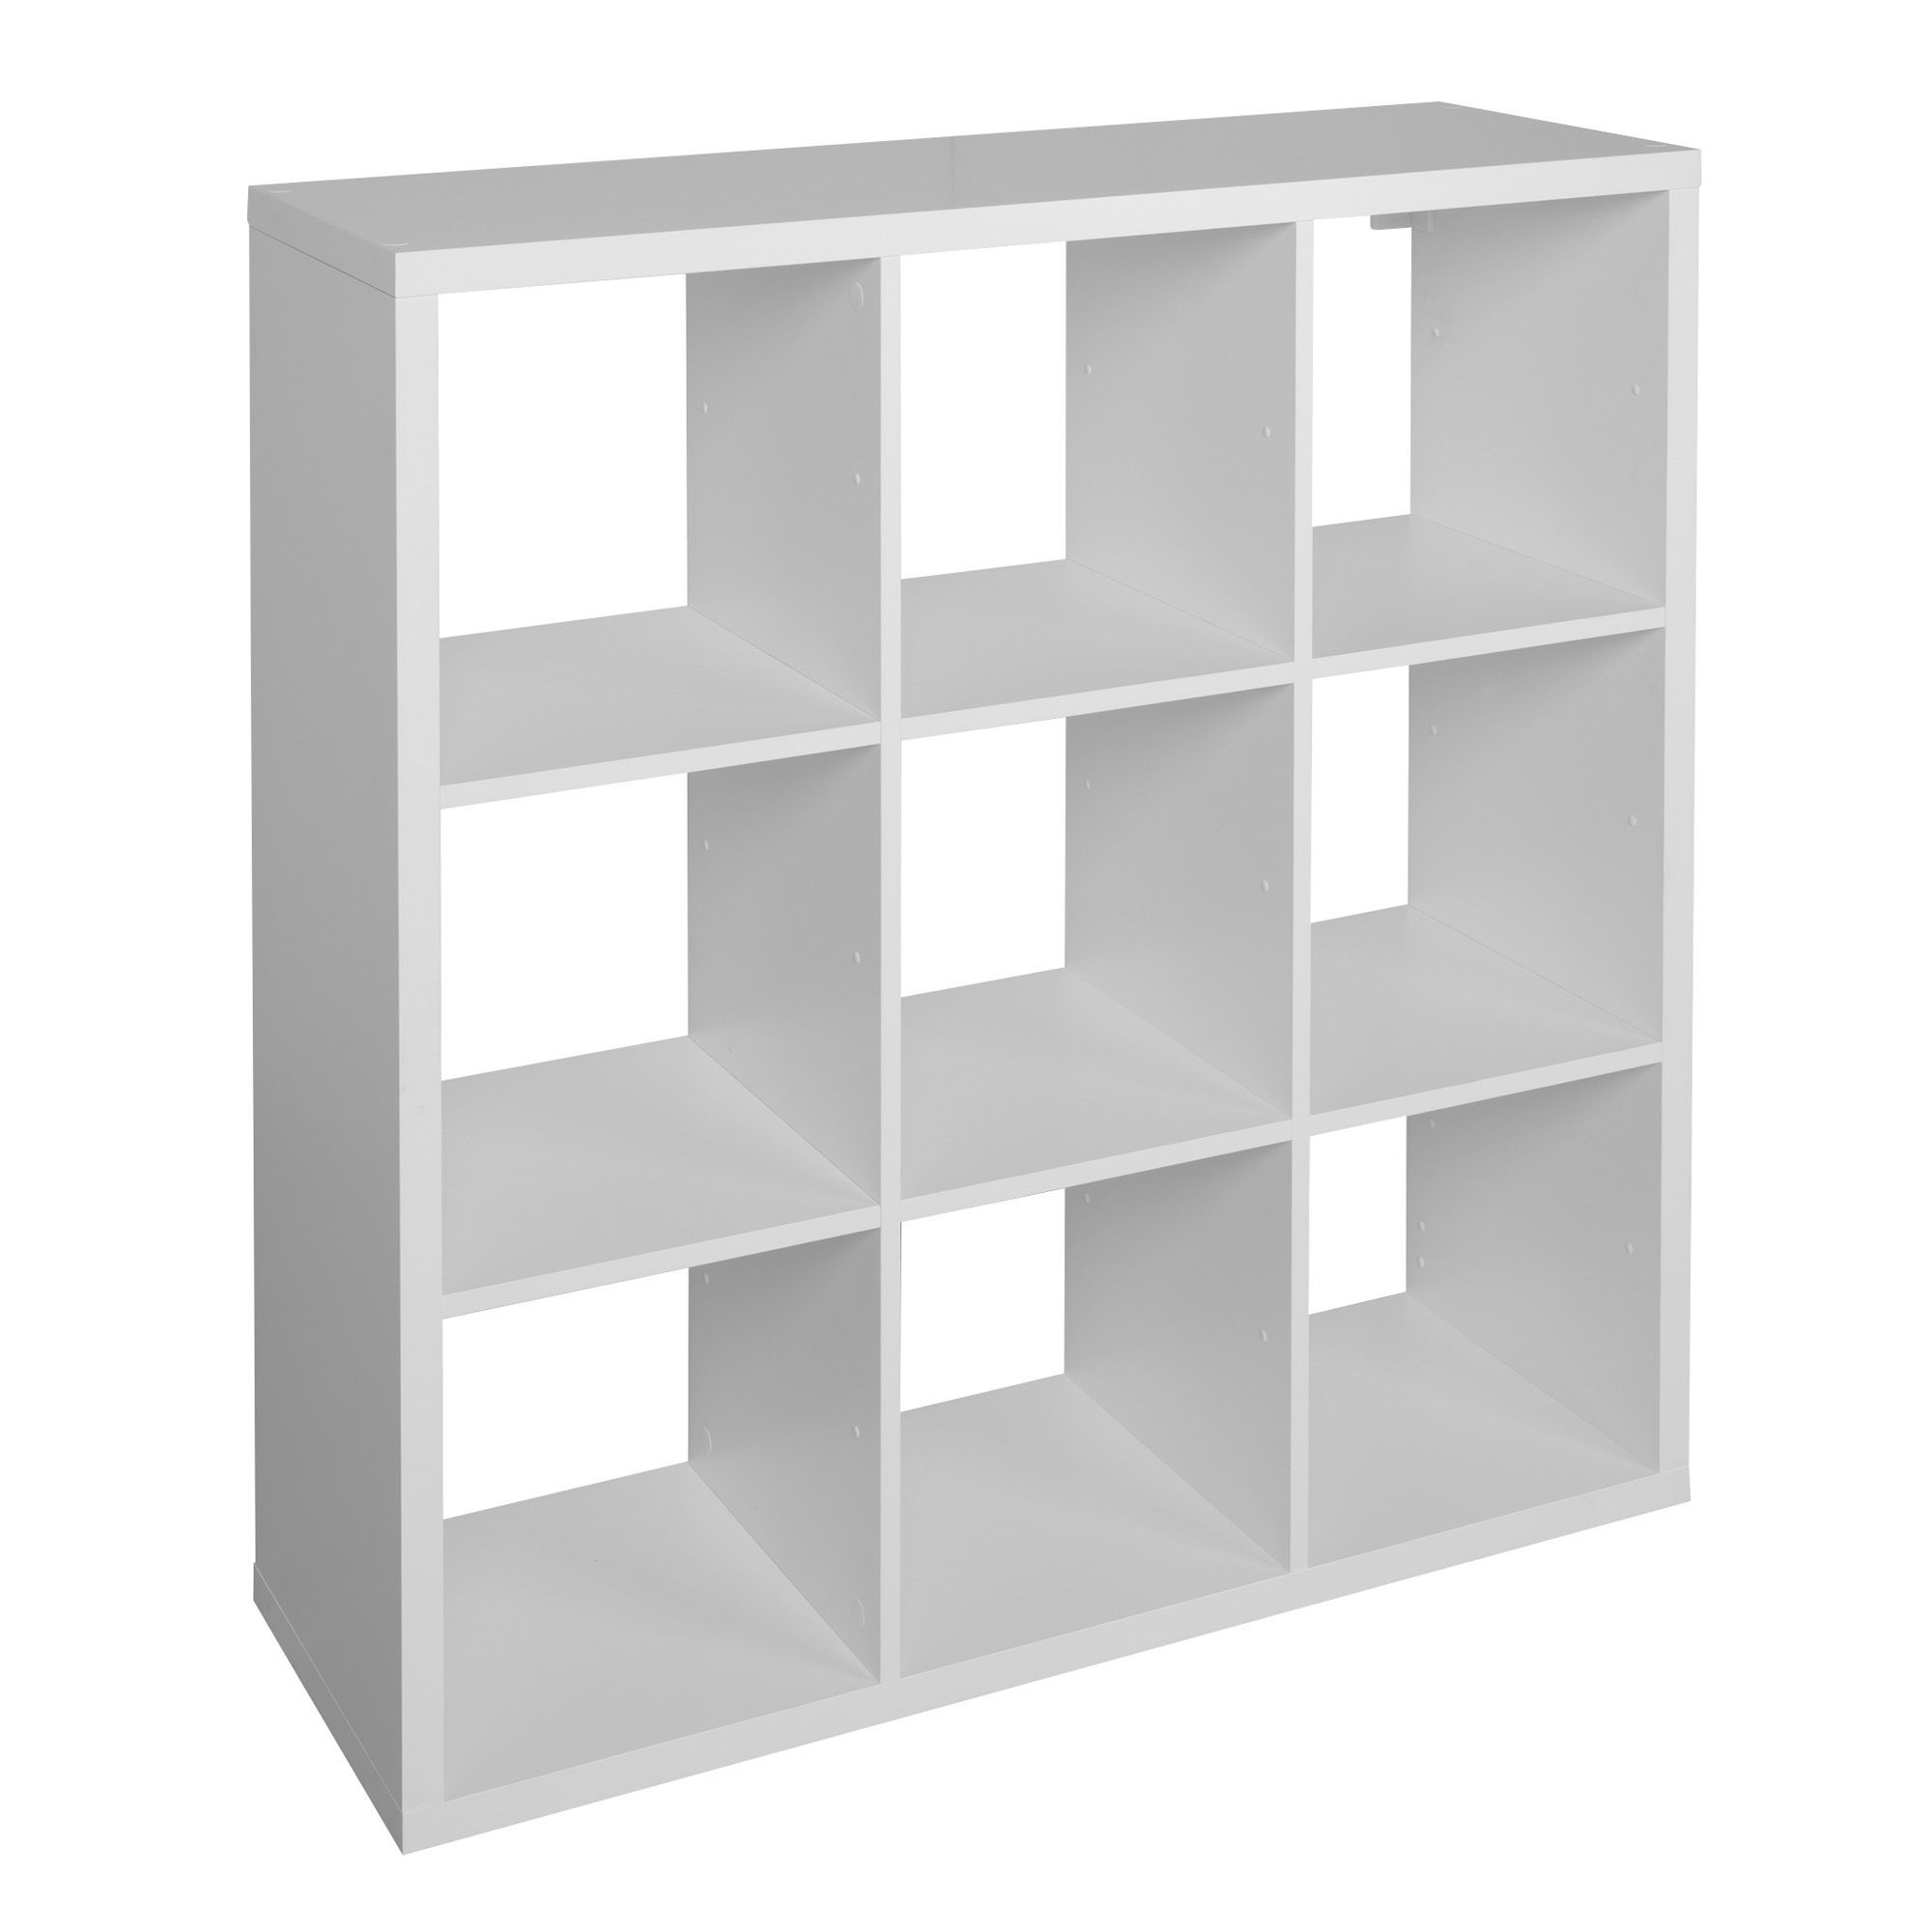 Form Mixxit White 9 Cube Shelving Unit H 1080mm W 1080mm